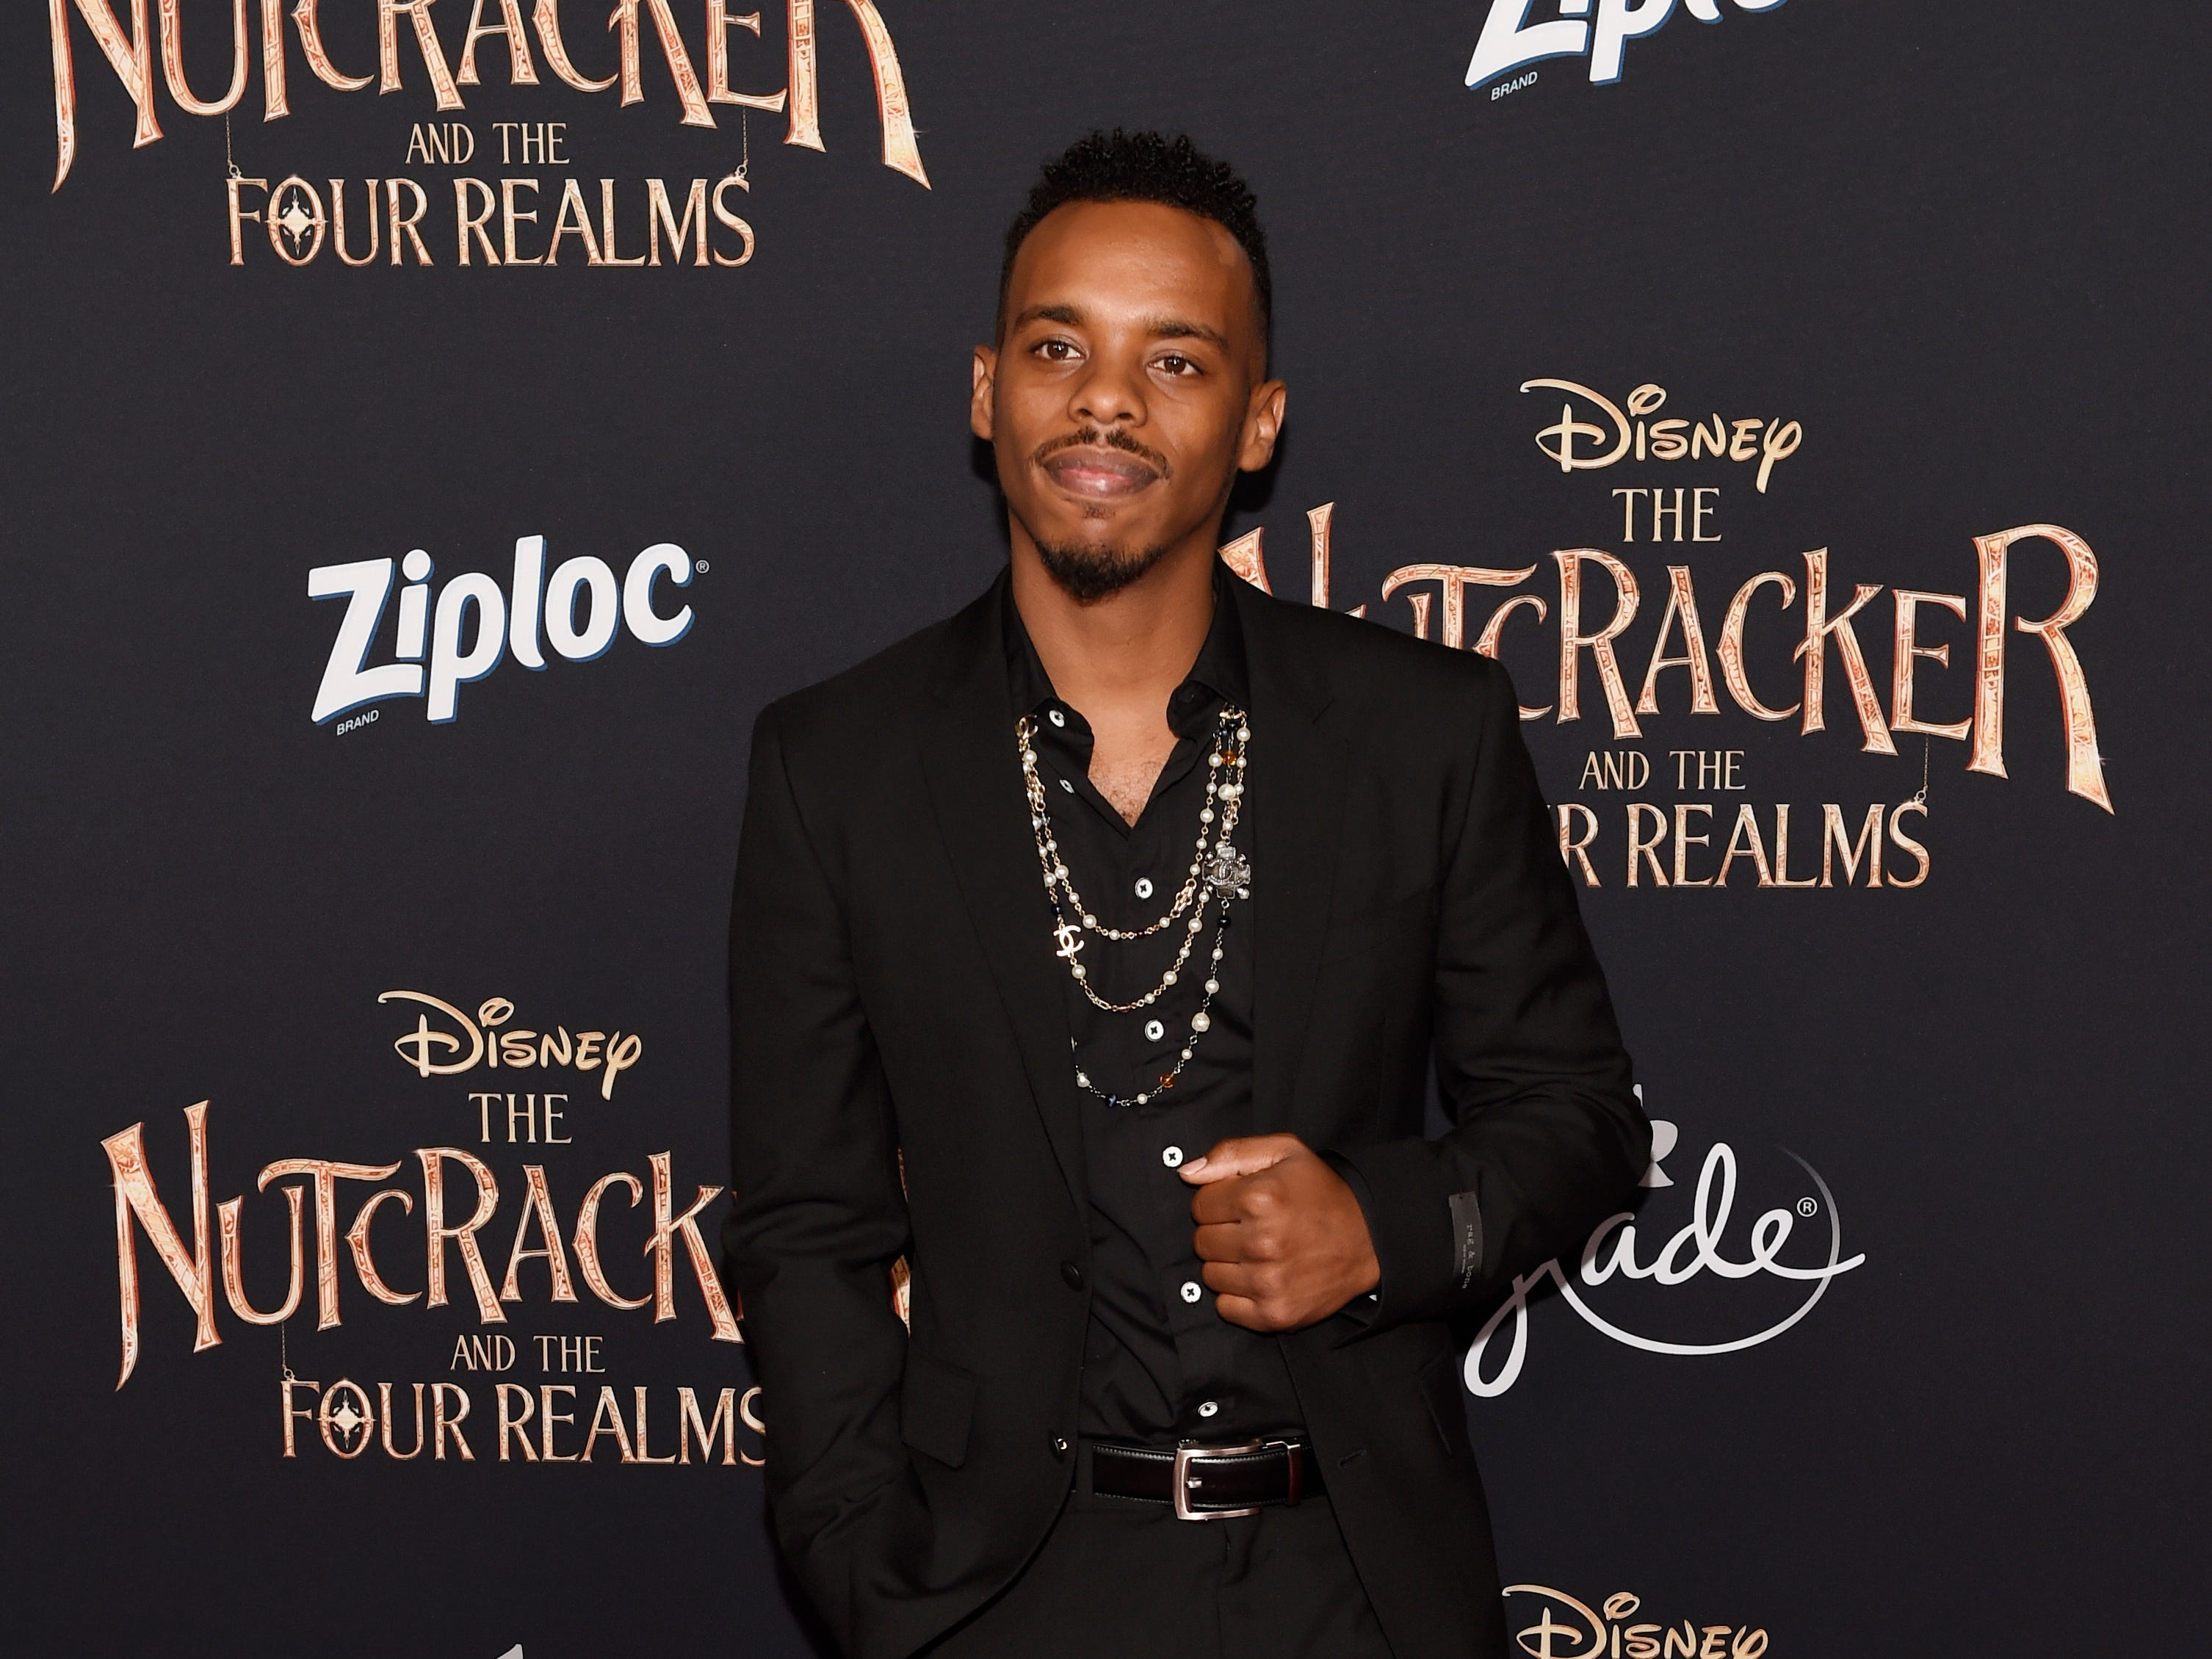 """Lil Buck, a cast member in """"The Nutcracker and the Four Realms,"""" poses at the premiere of the film at the Dolby Theatre on Oct. 29 in Los Angeles."""